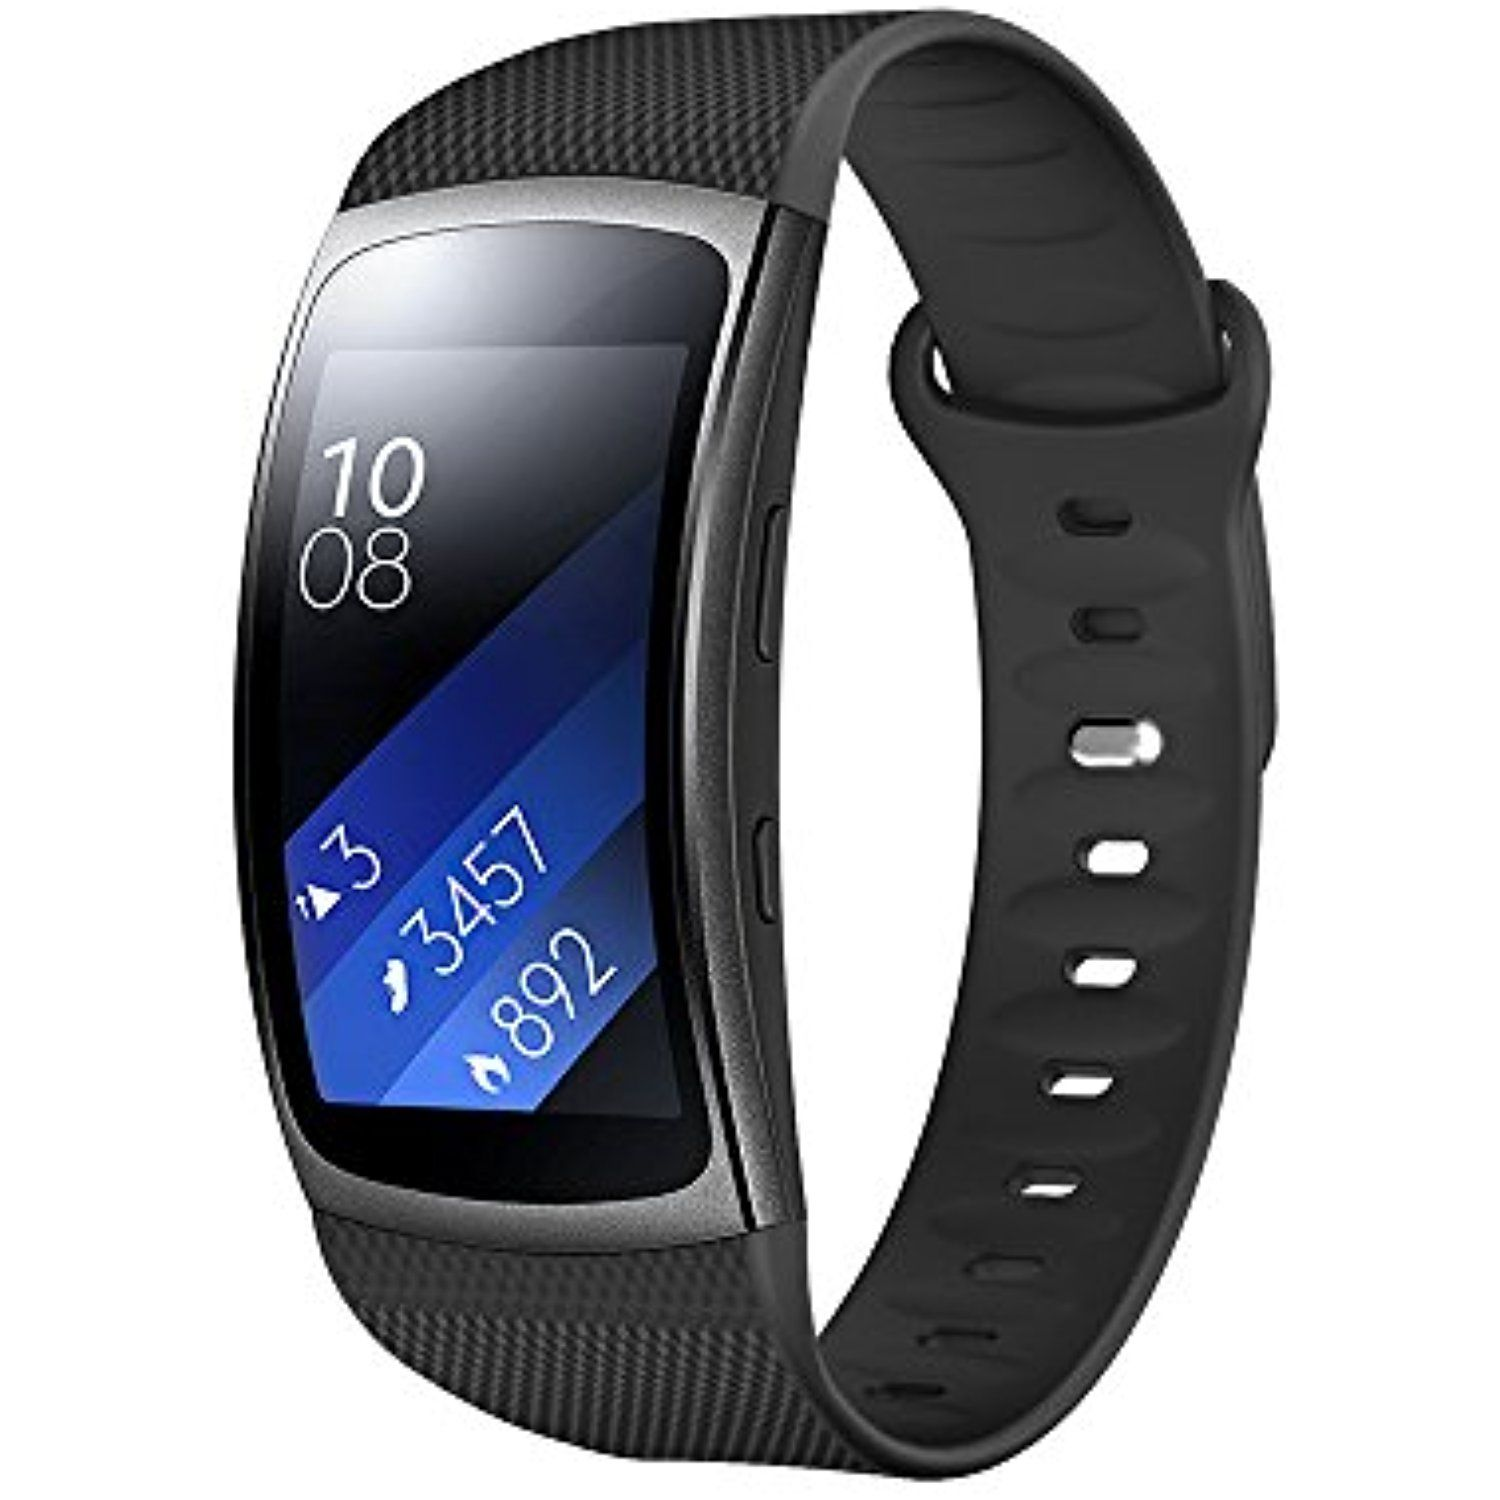 Samsung Gear Fit2 Fit2 Pro Bands Simpeak Silicone Replacement Band Strap For Samsung Gear Fit 2 And Fi Samsung Gear Fit 2 Samsung Gear Fit Activity Monitors